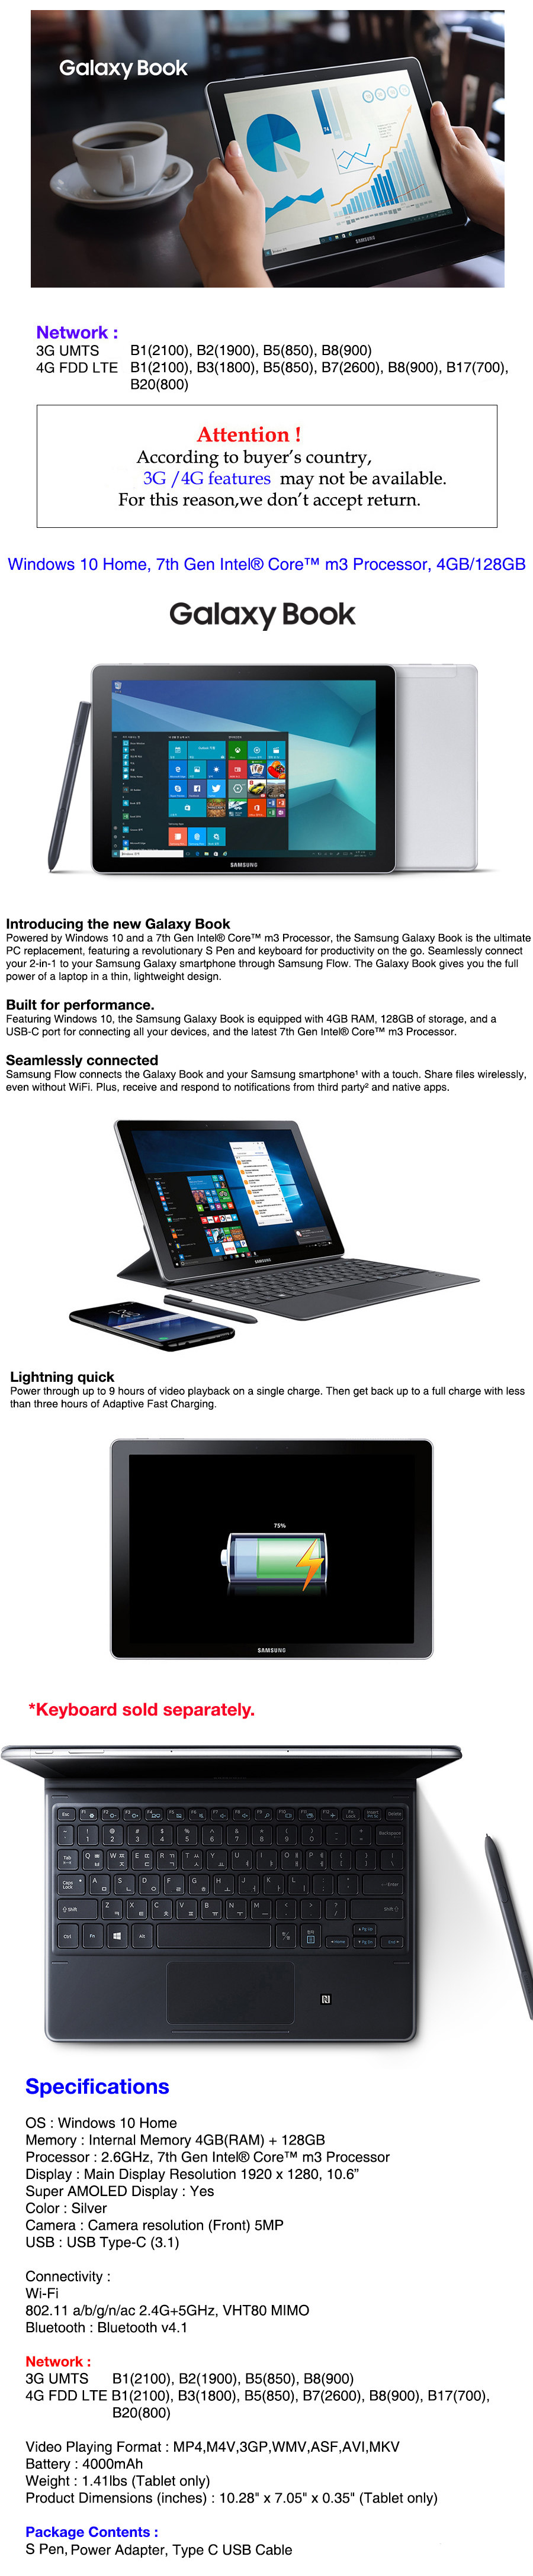 Details about Samsung Galaxy Book 10 6